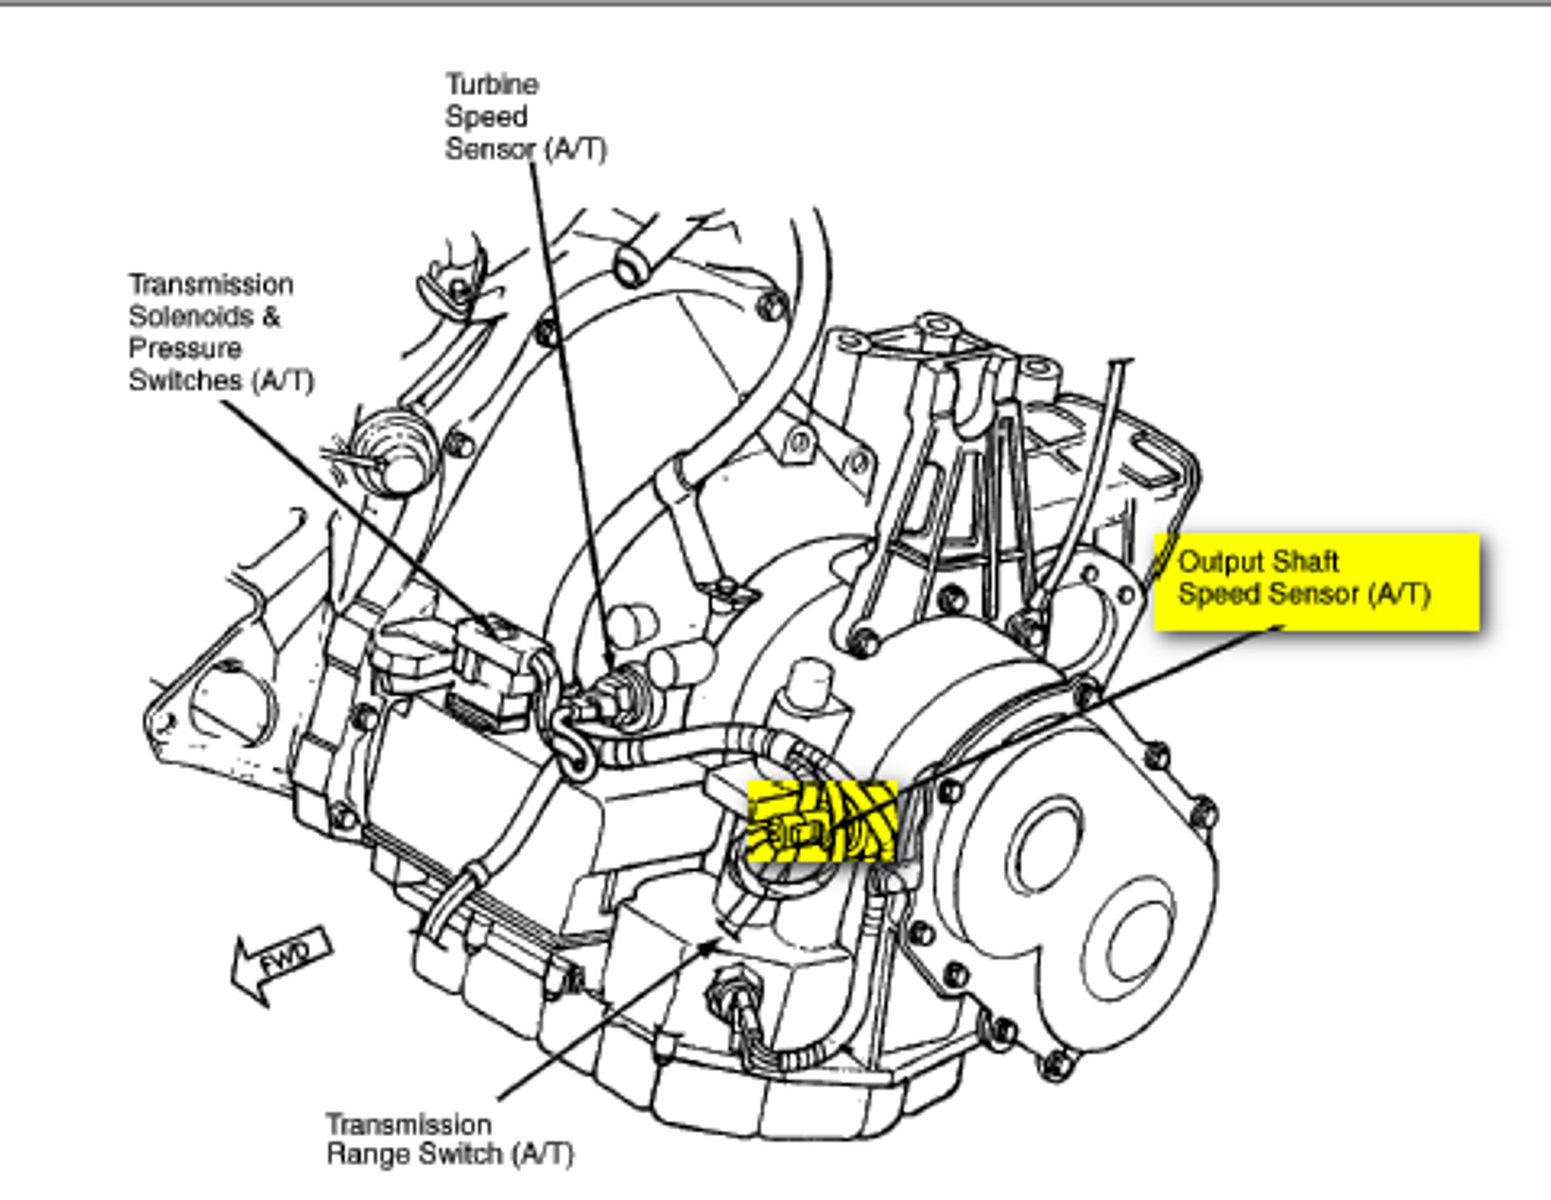 Discussion C1698_ds556905 on 2005 Mustang V6 Engine Diagram